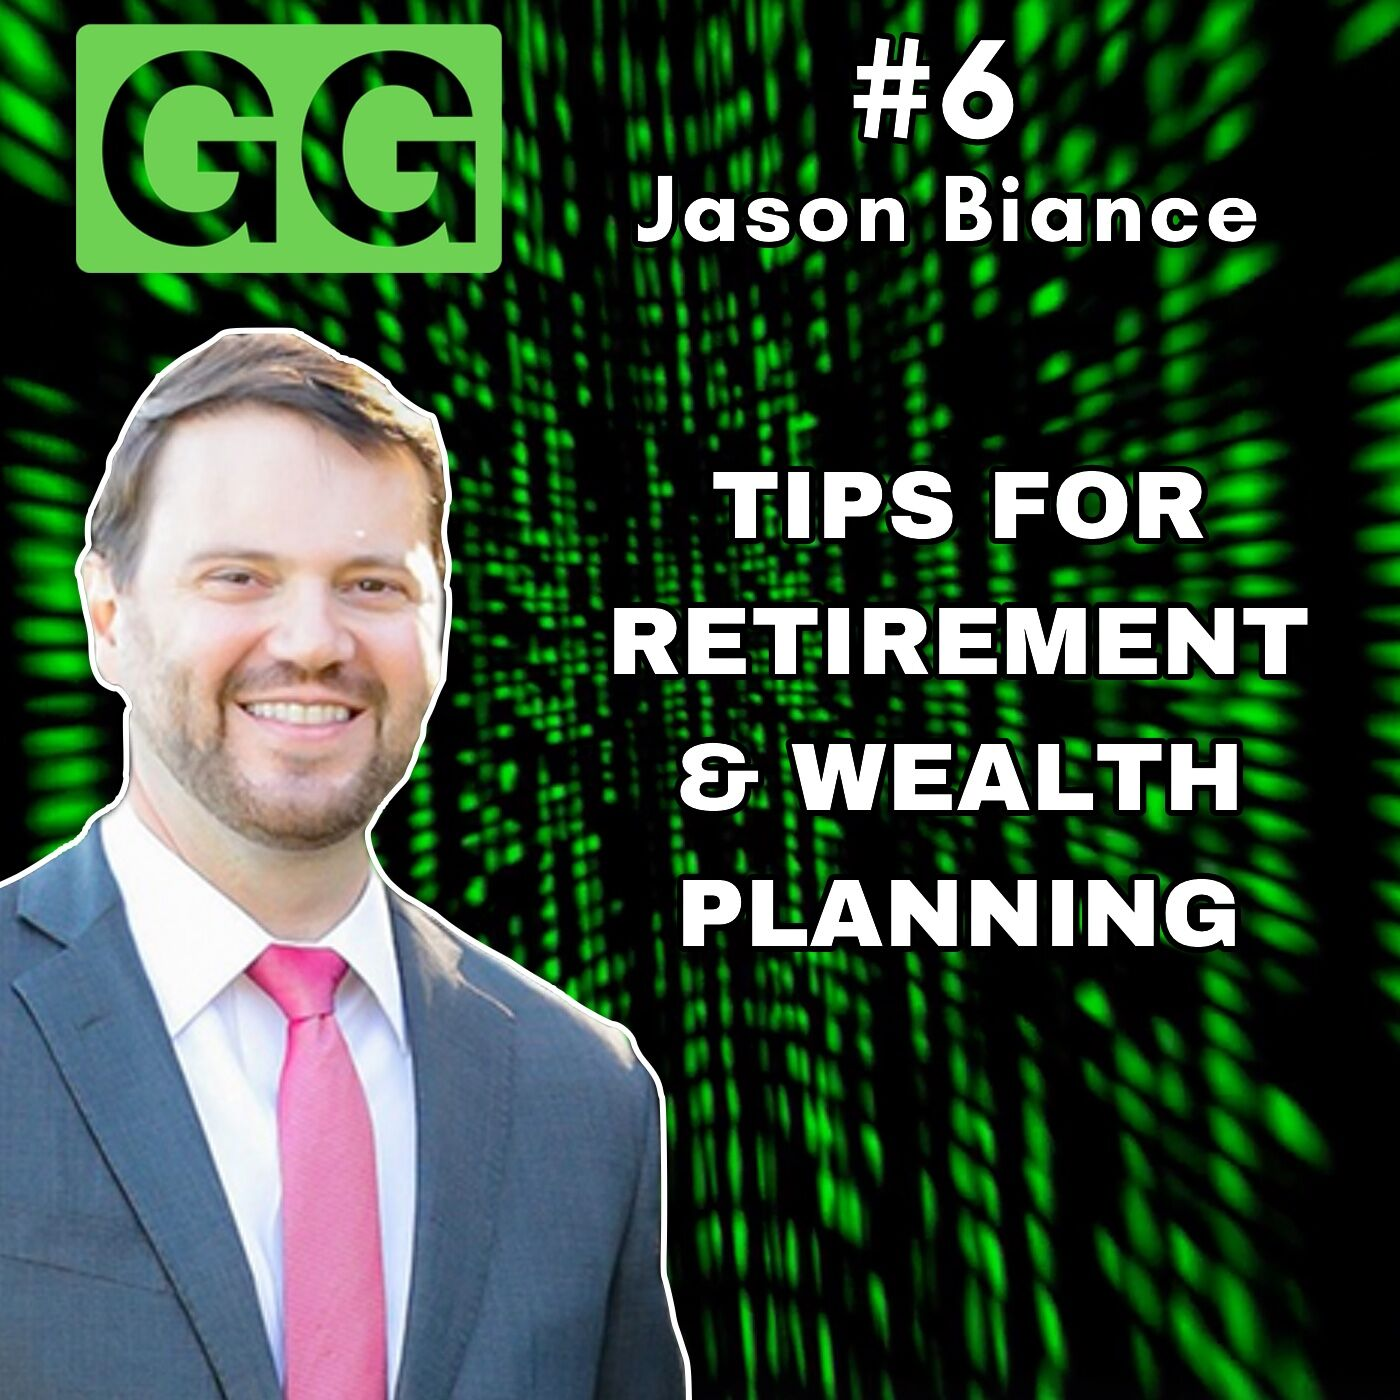 #6 - Jason Biance: Tips for Retirement and Wealth Planning